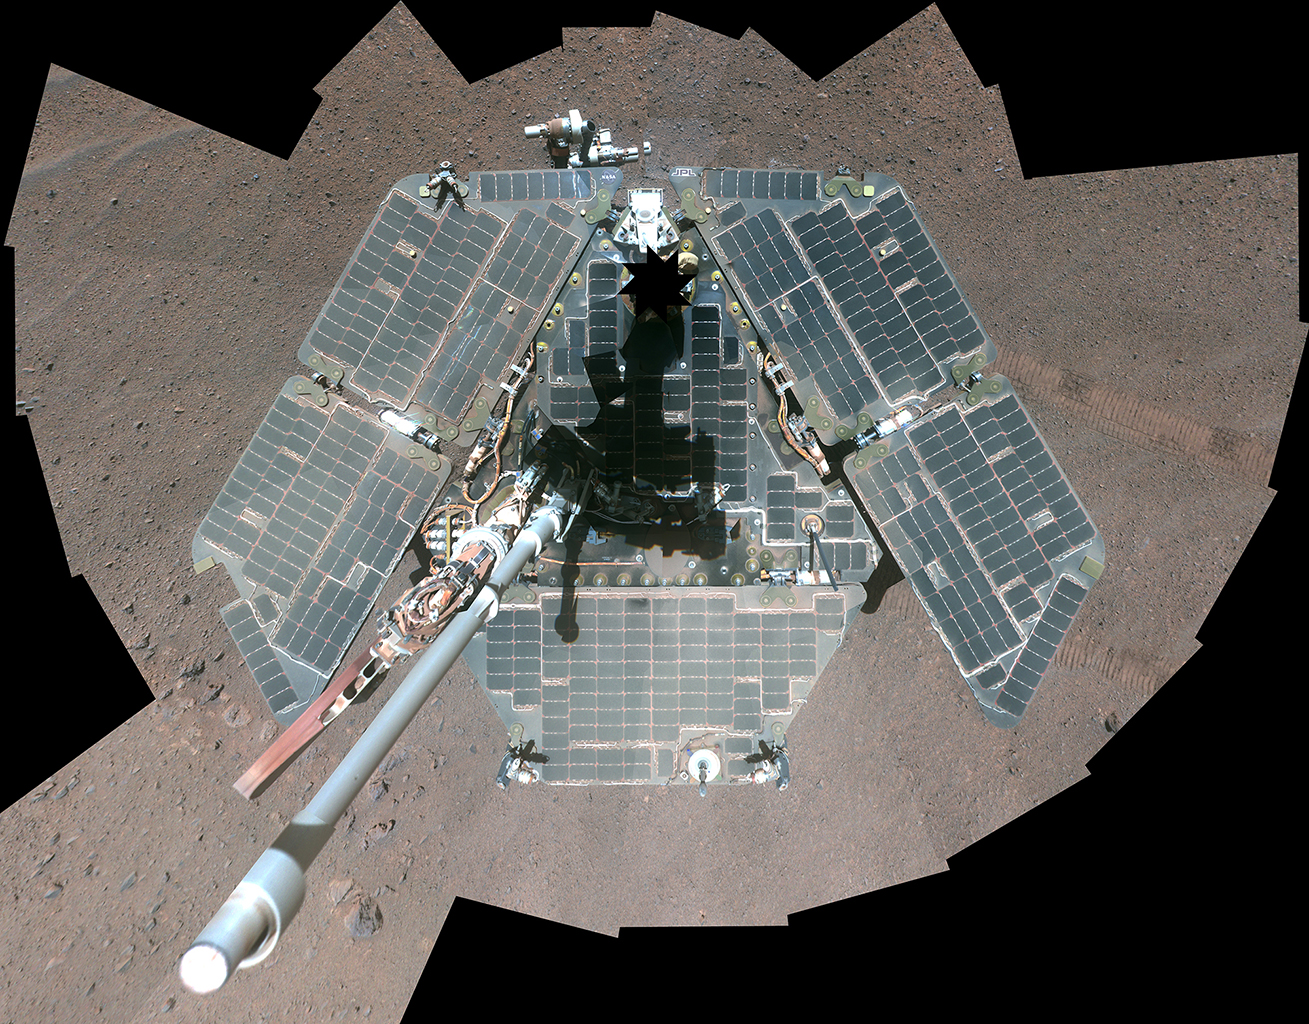 NASA May Ax Long-Lived Mars Rover Opportunity Mission Next Year